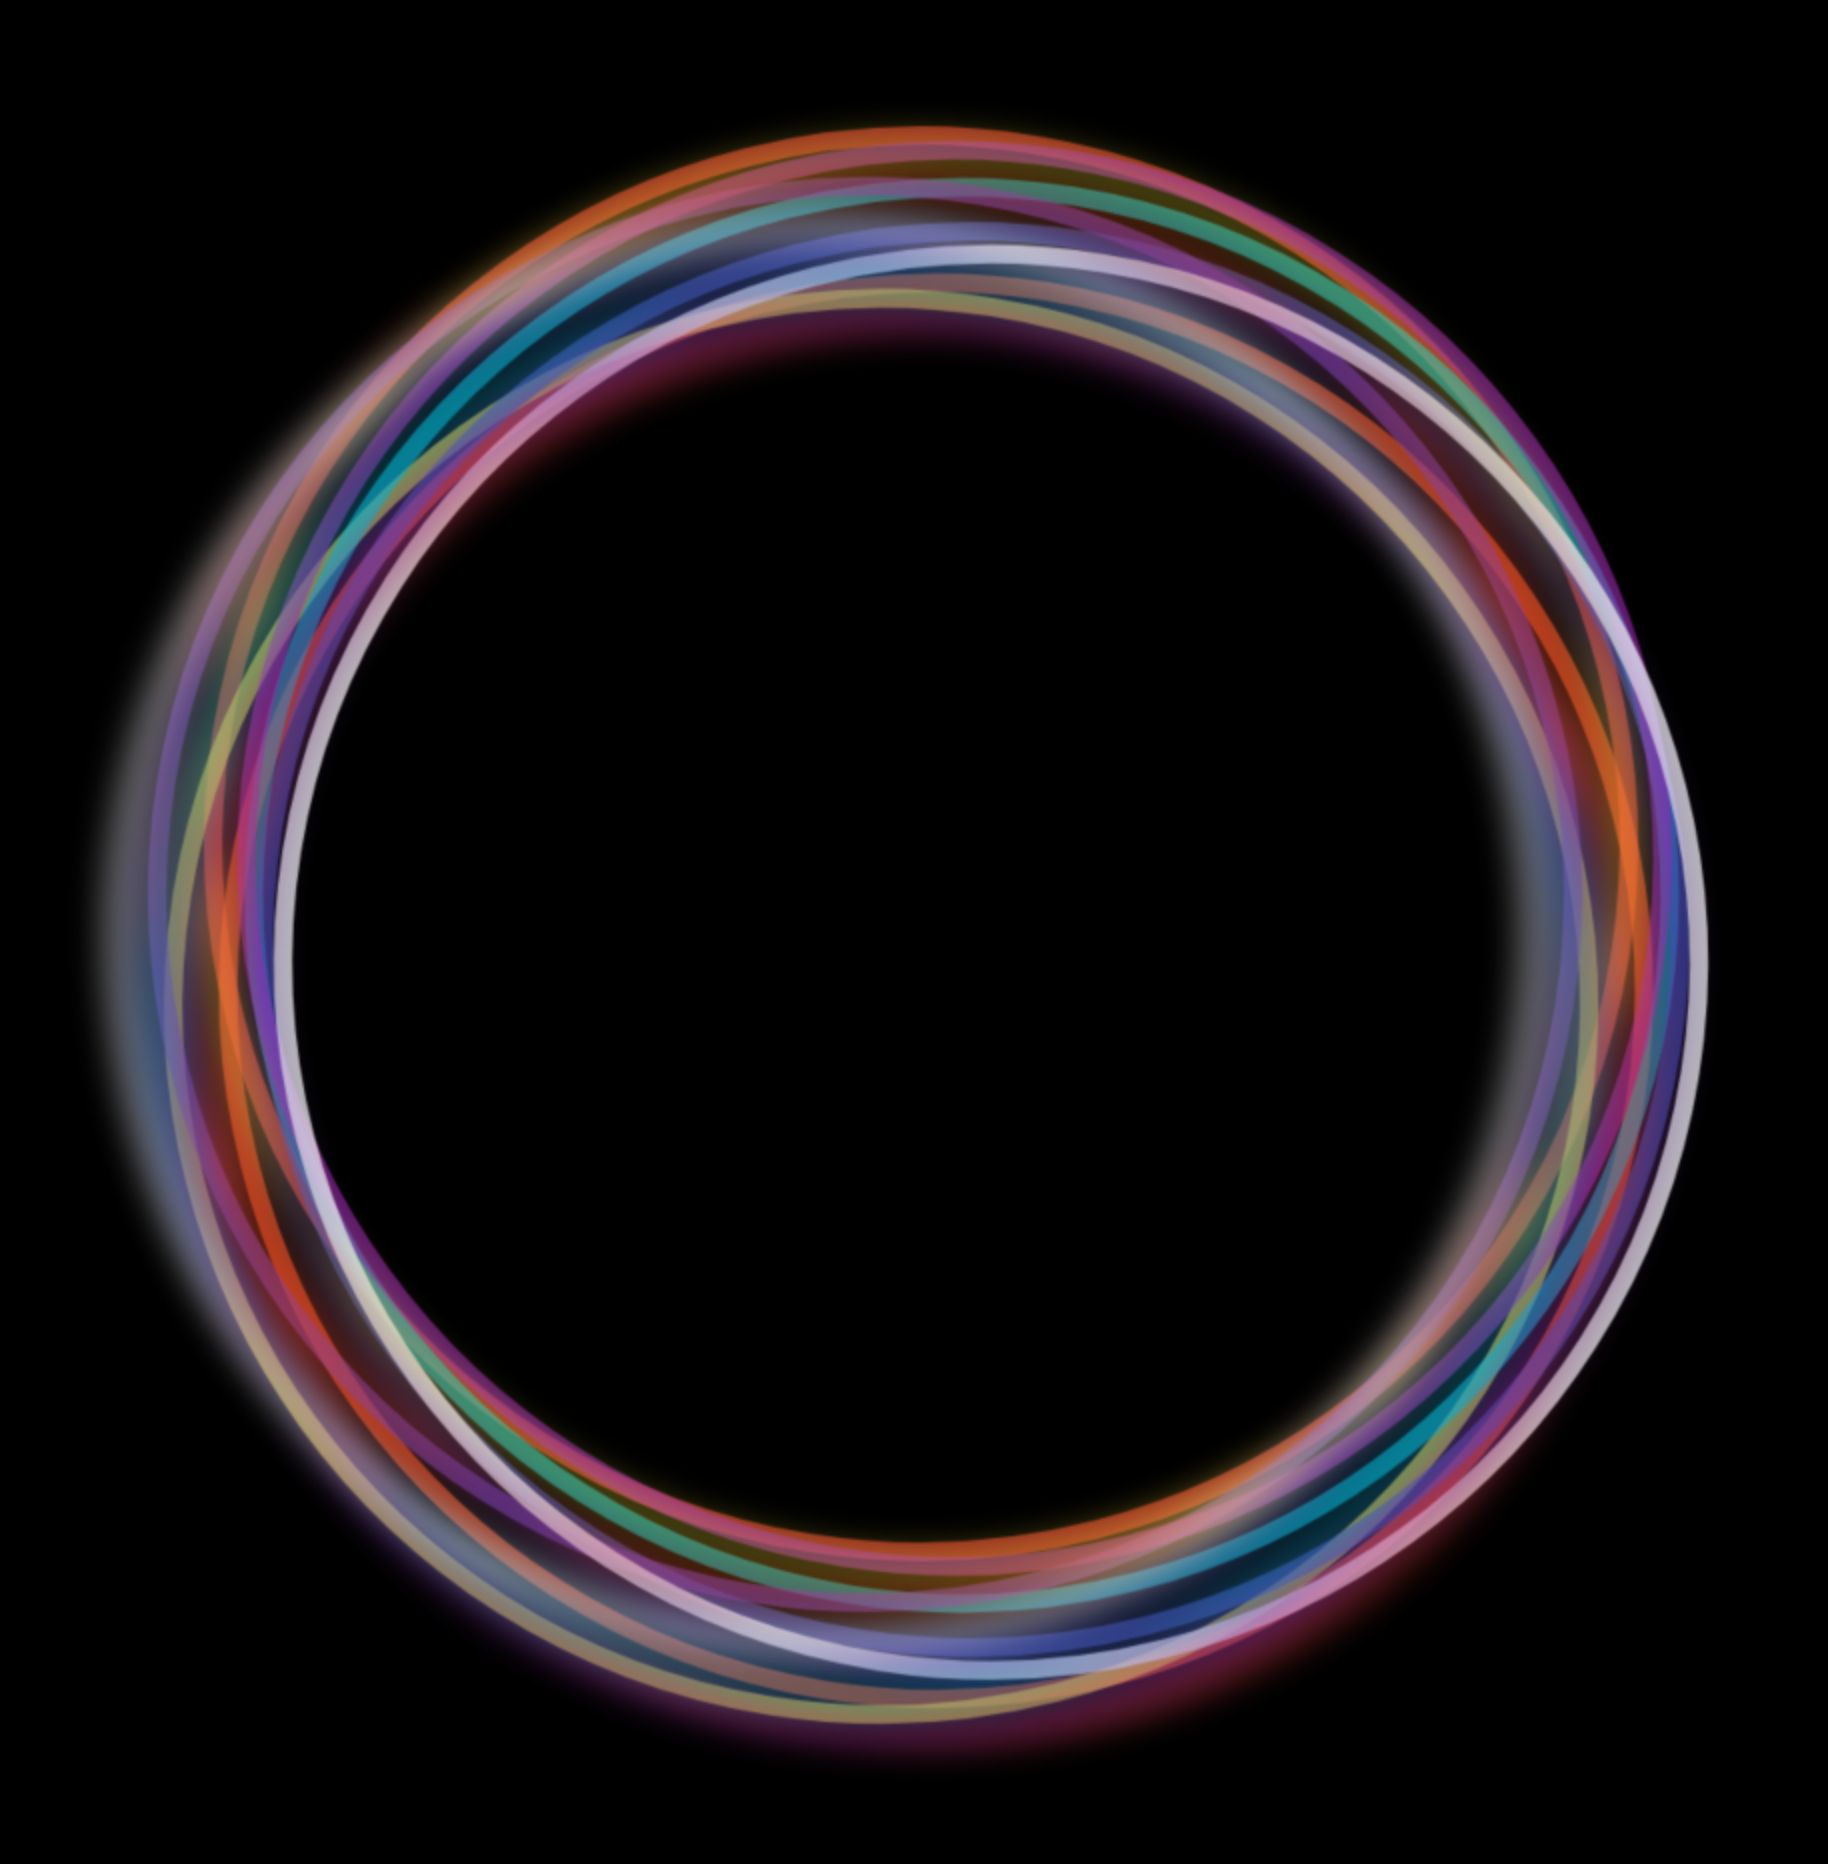 Rainbow Ring Loading